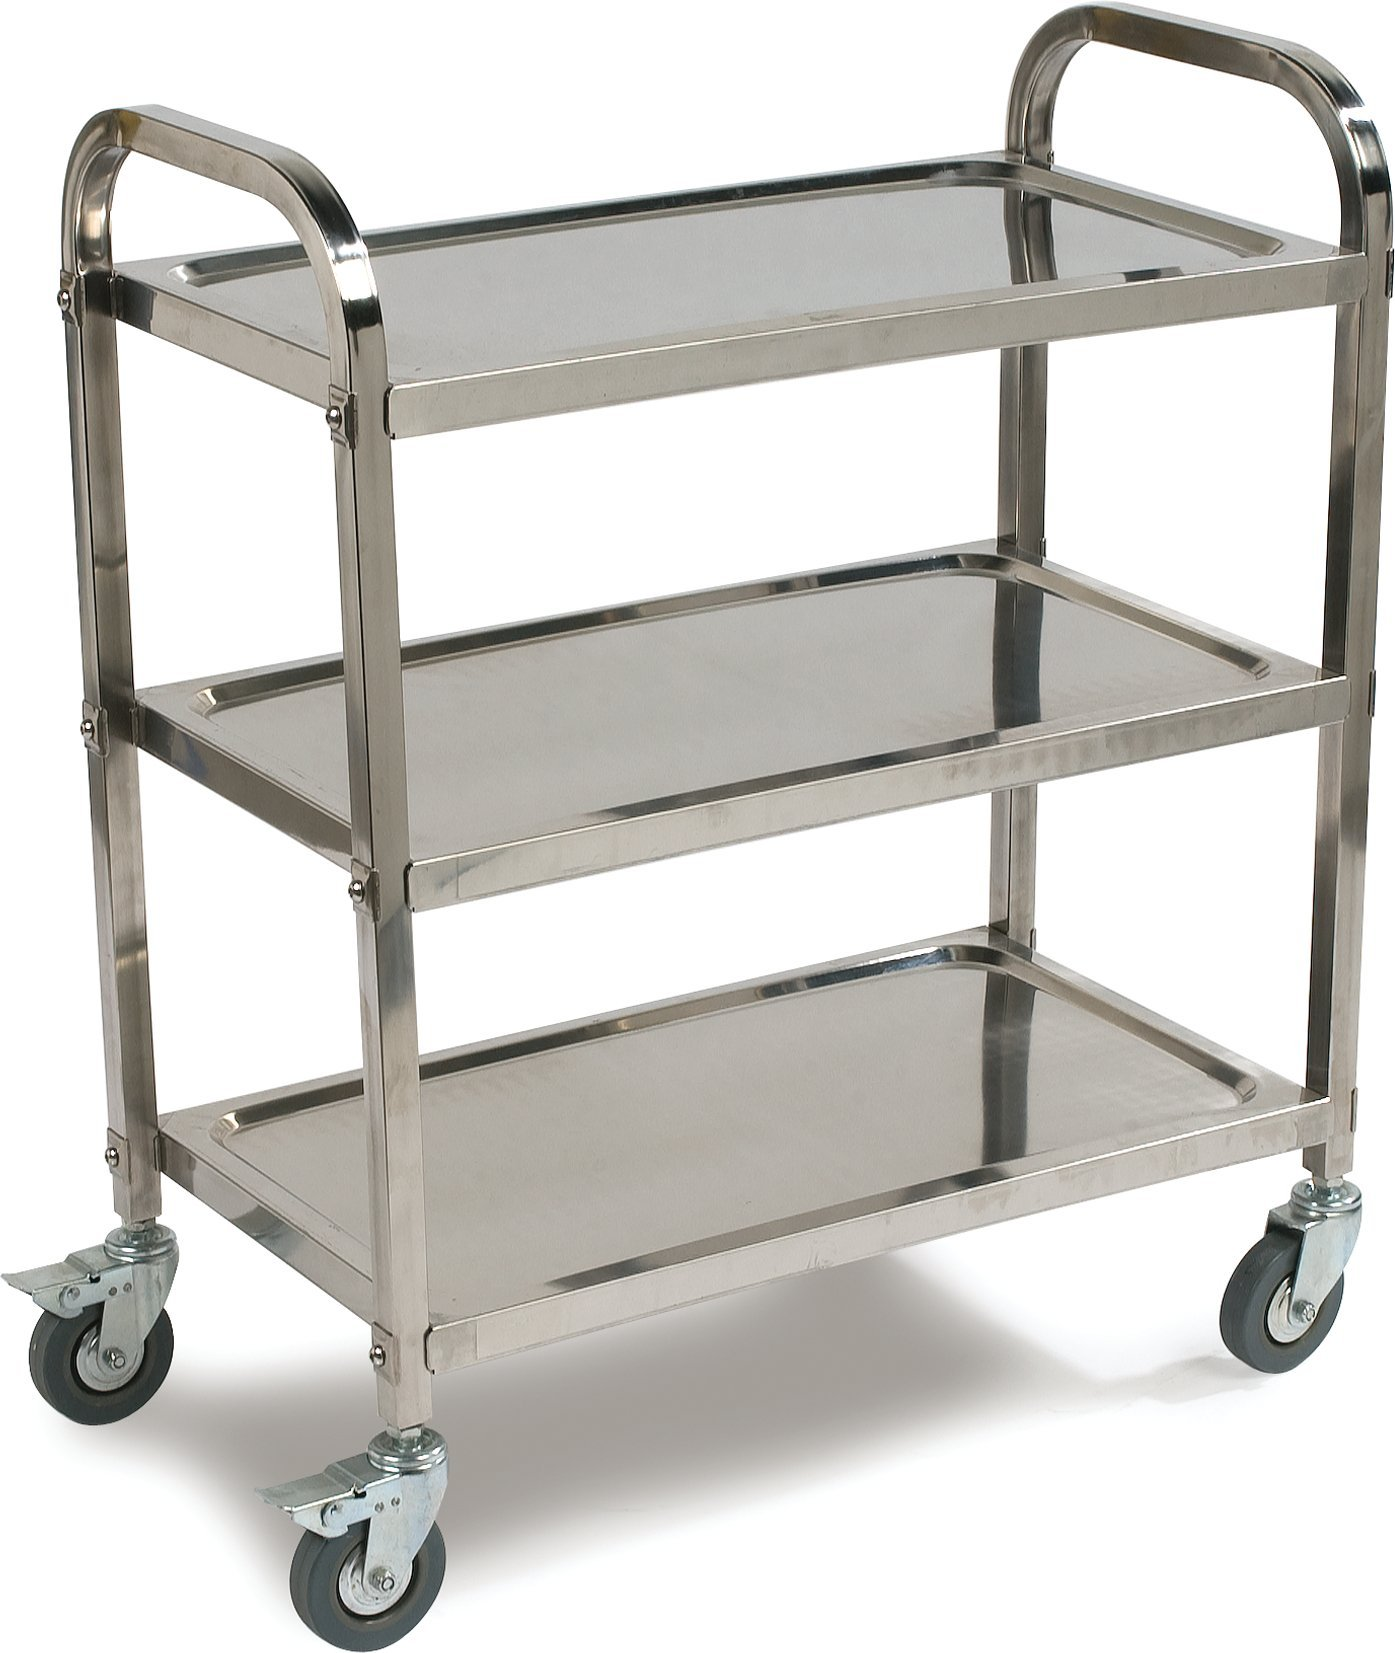 Carlisle UC4031529  Knockdown Stainless Steel 3 Shelf Utility / Service Cart, 400 lb. Capacity